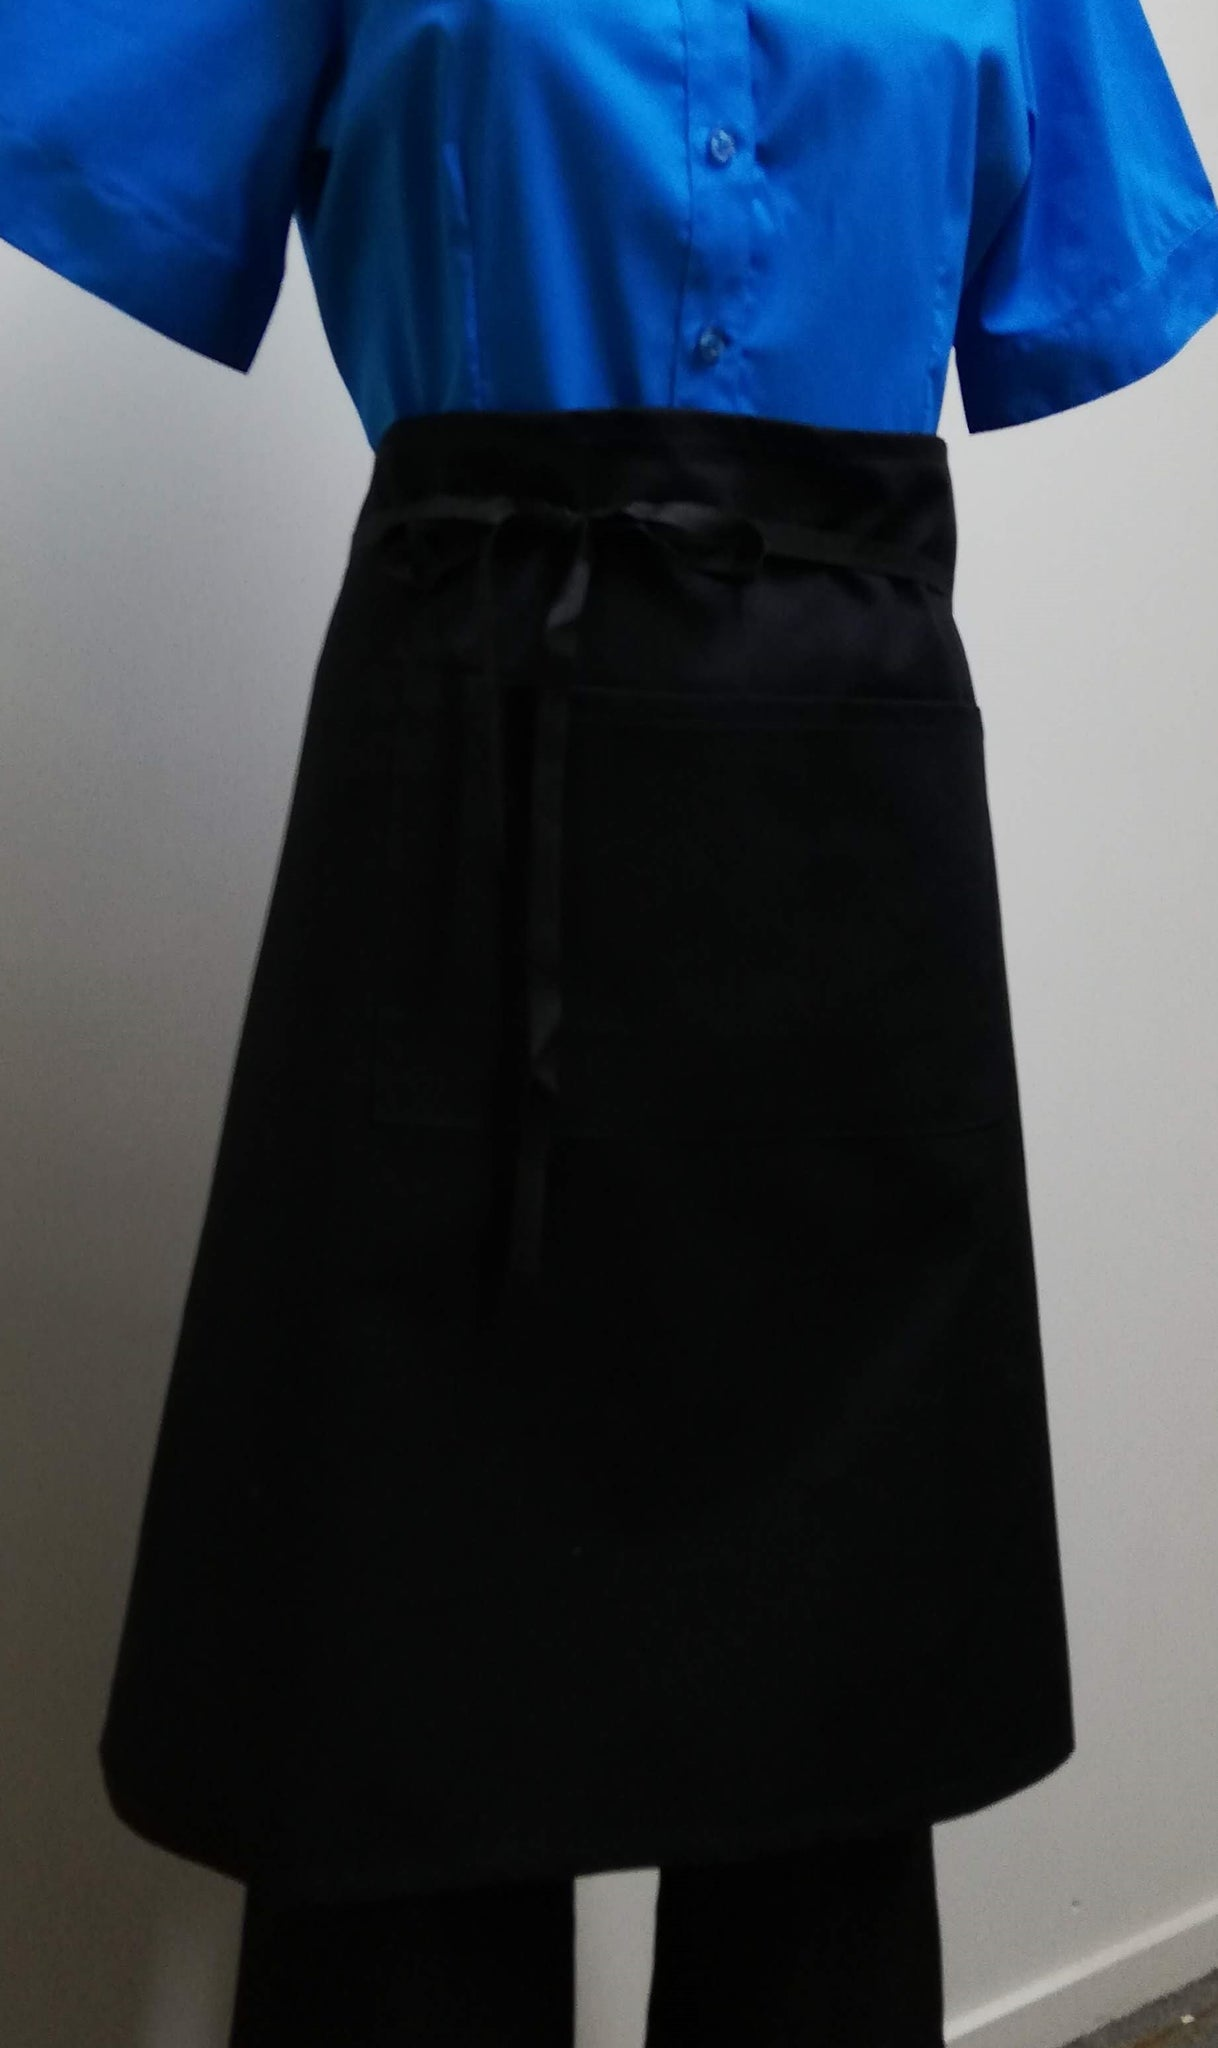 AC11P Waist Apron NZ Made - Navy